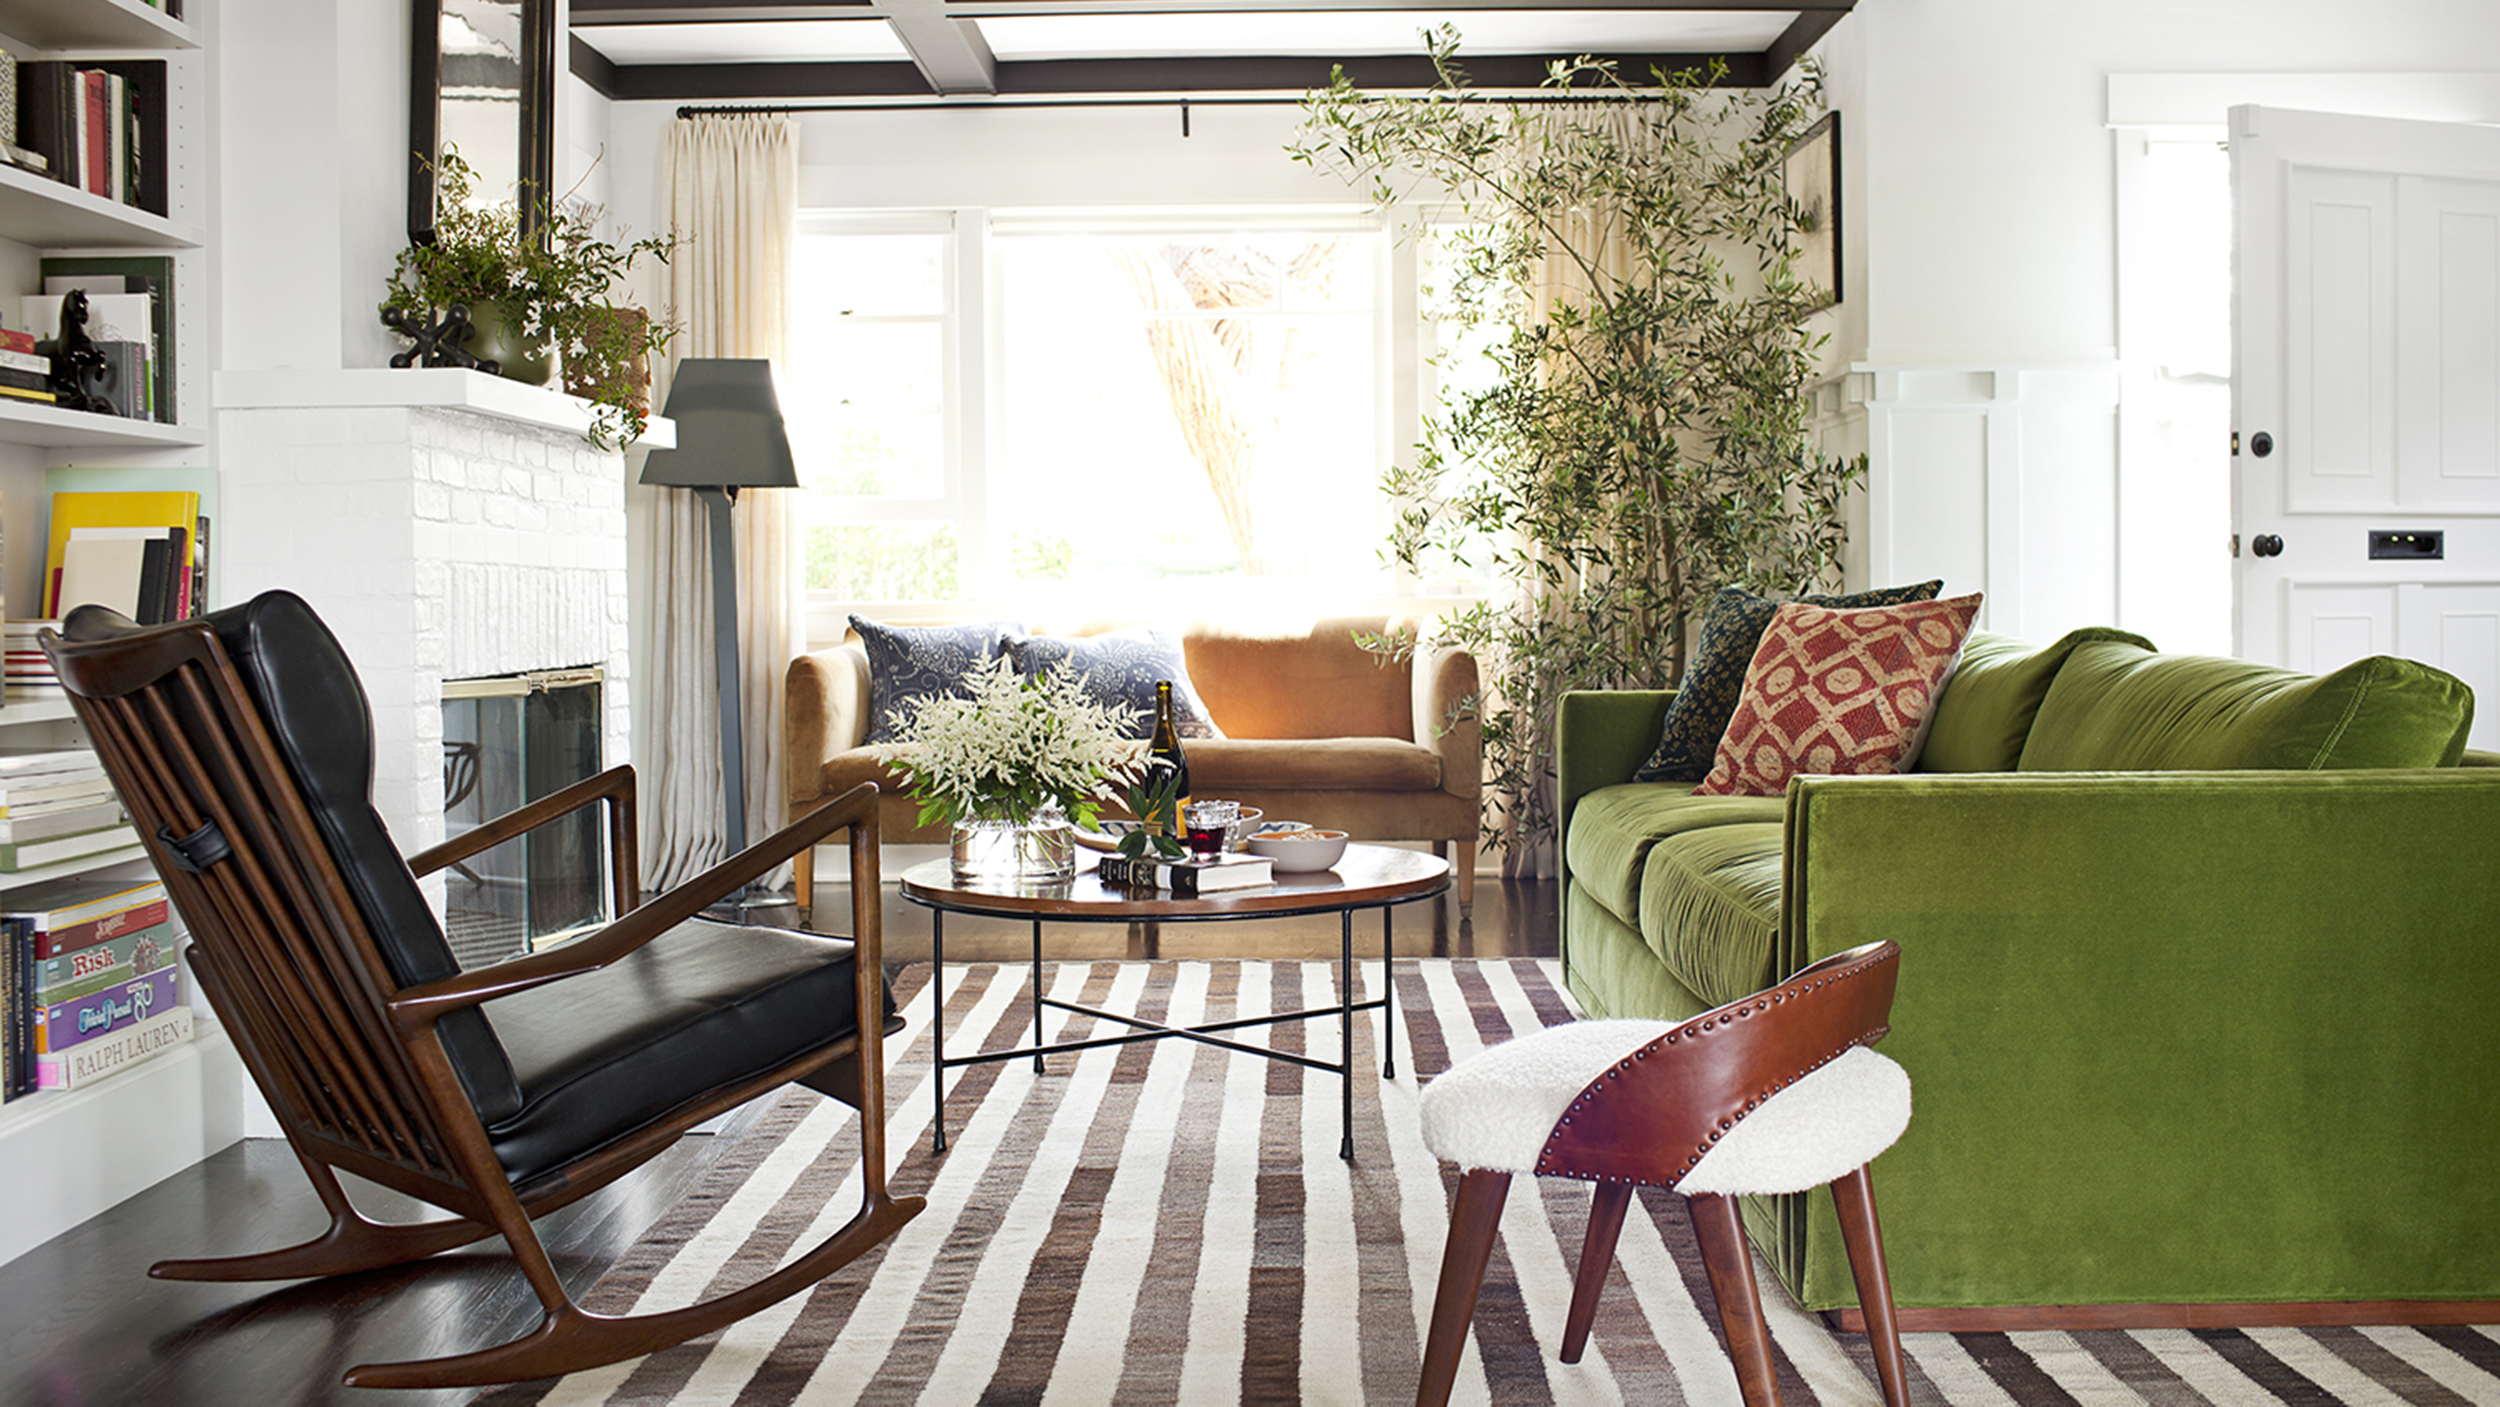 Make your home feel bigger with these design tricks  TODAYcom